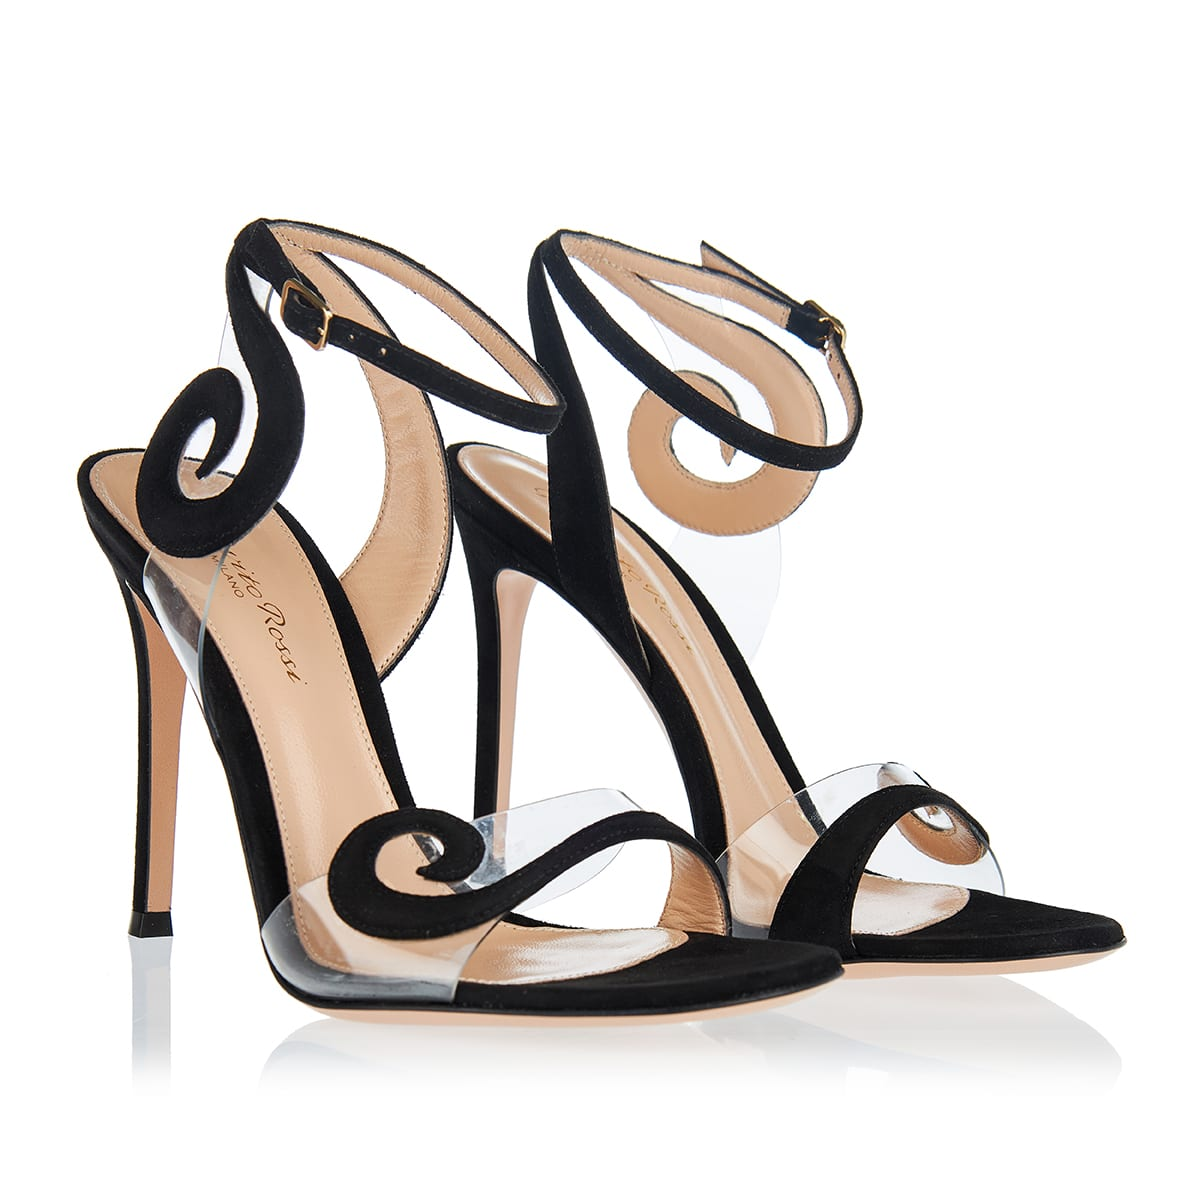 Suede and pvc sandals